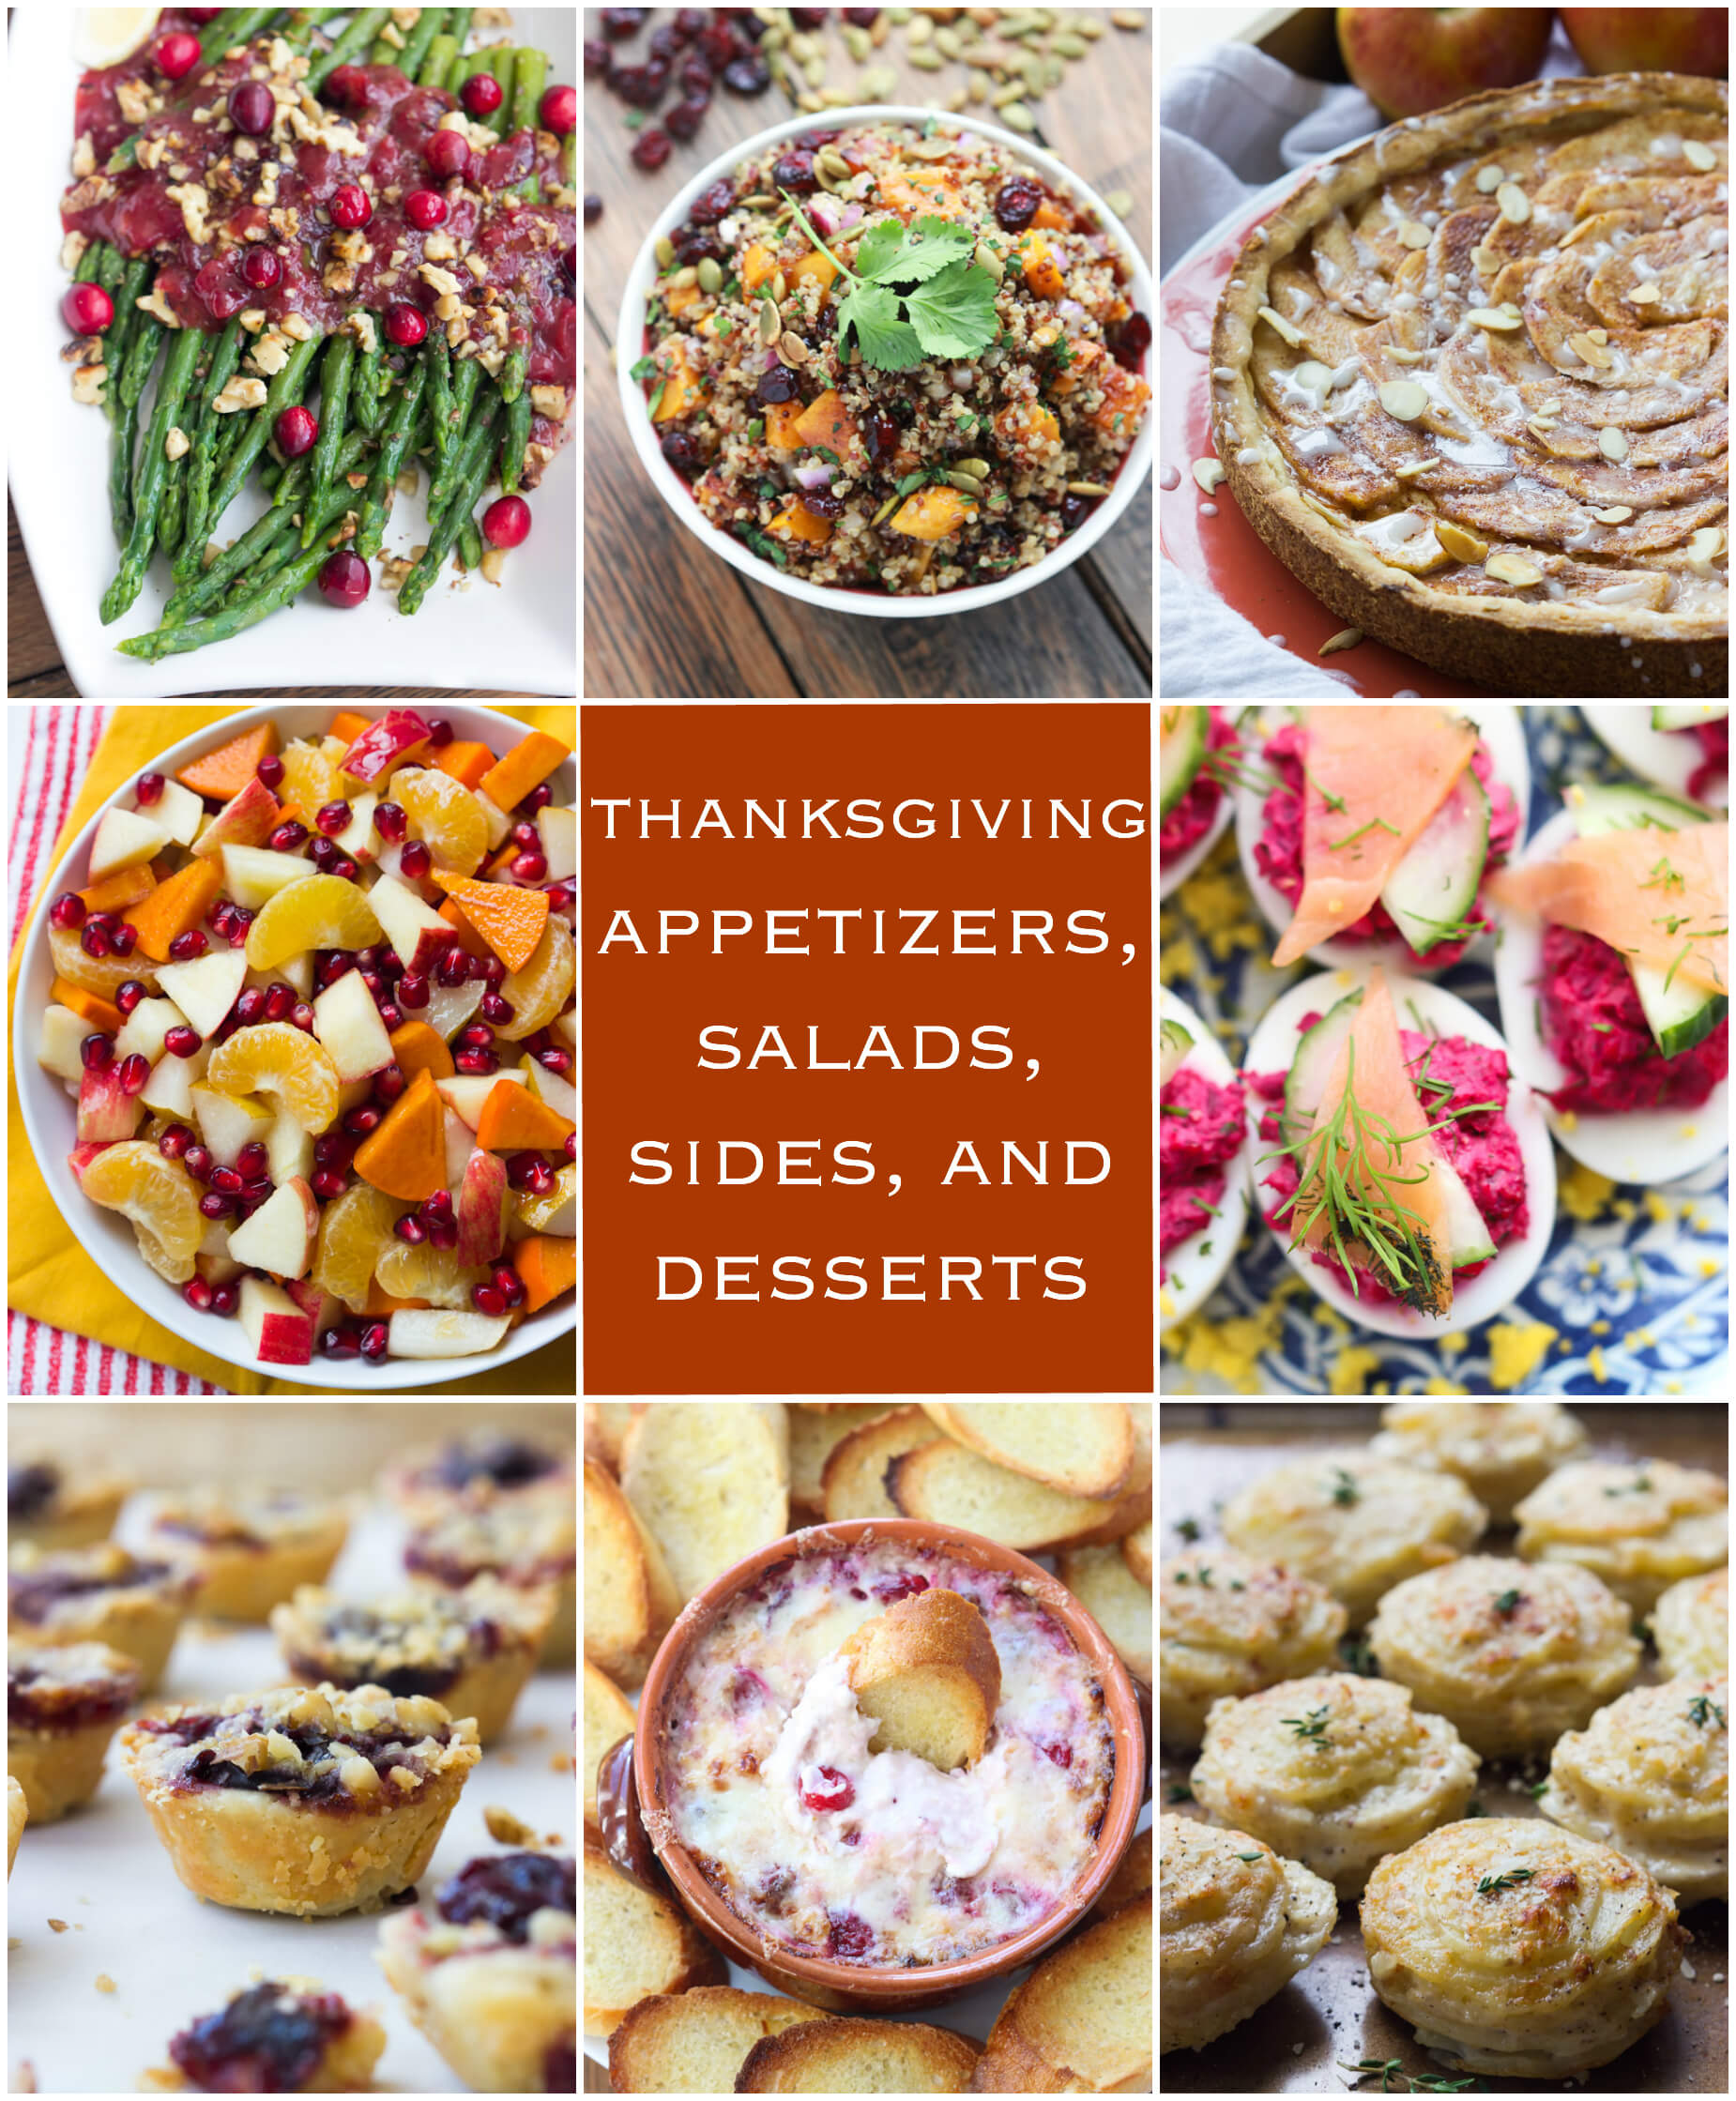 Thanksgiving appetizers, thanksgiving salads, thanksgiving sides, thanksgiving desserts | littlebroken.com @littlebroken